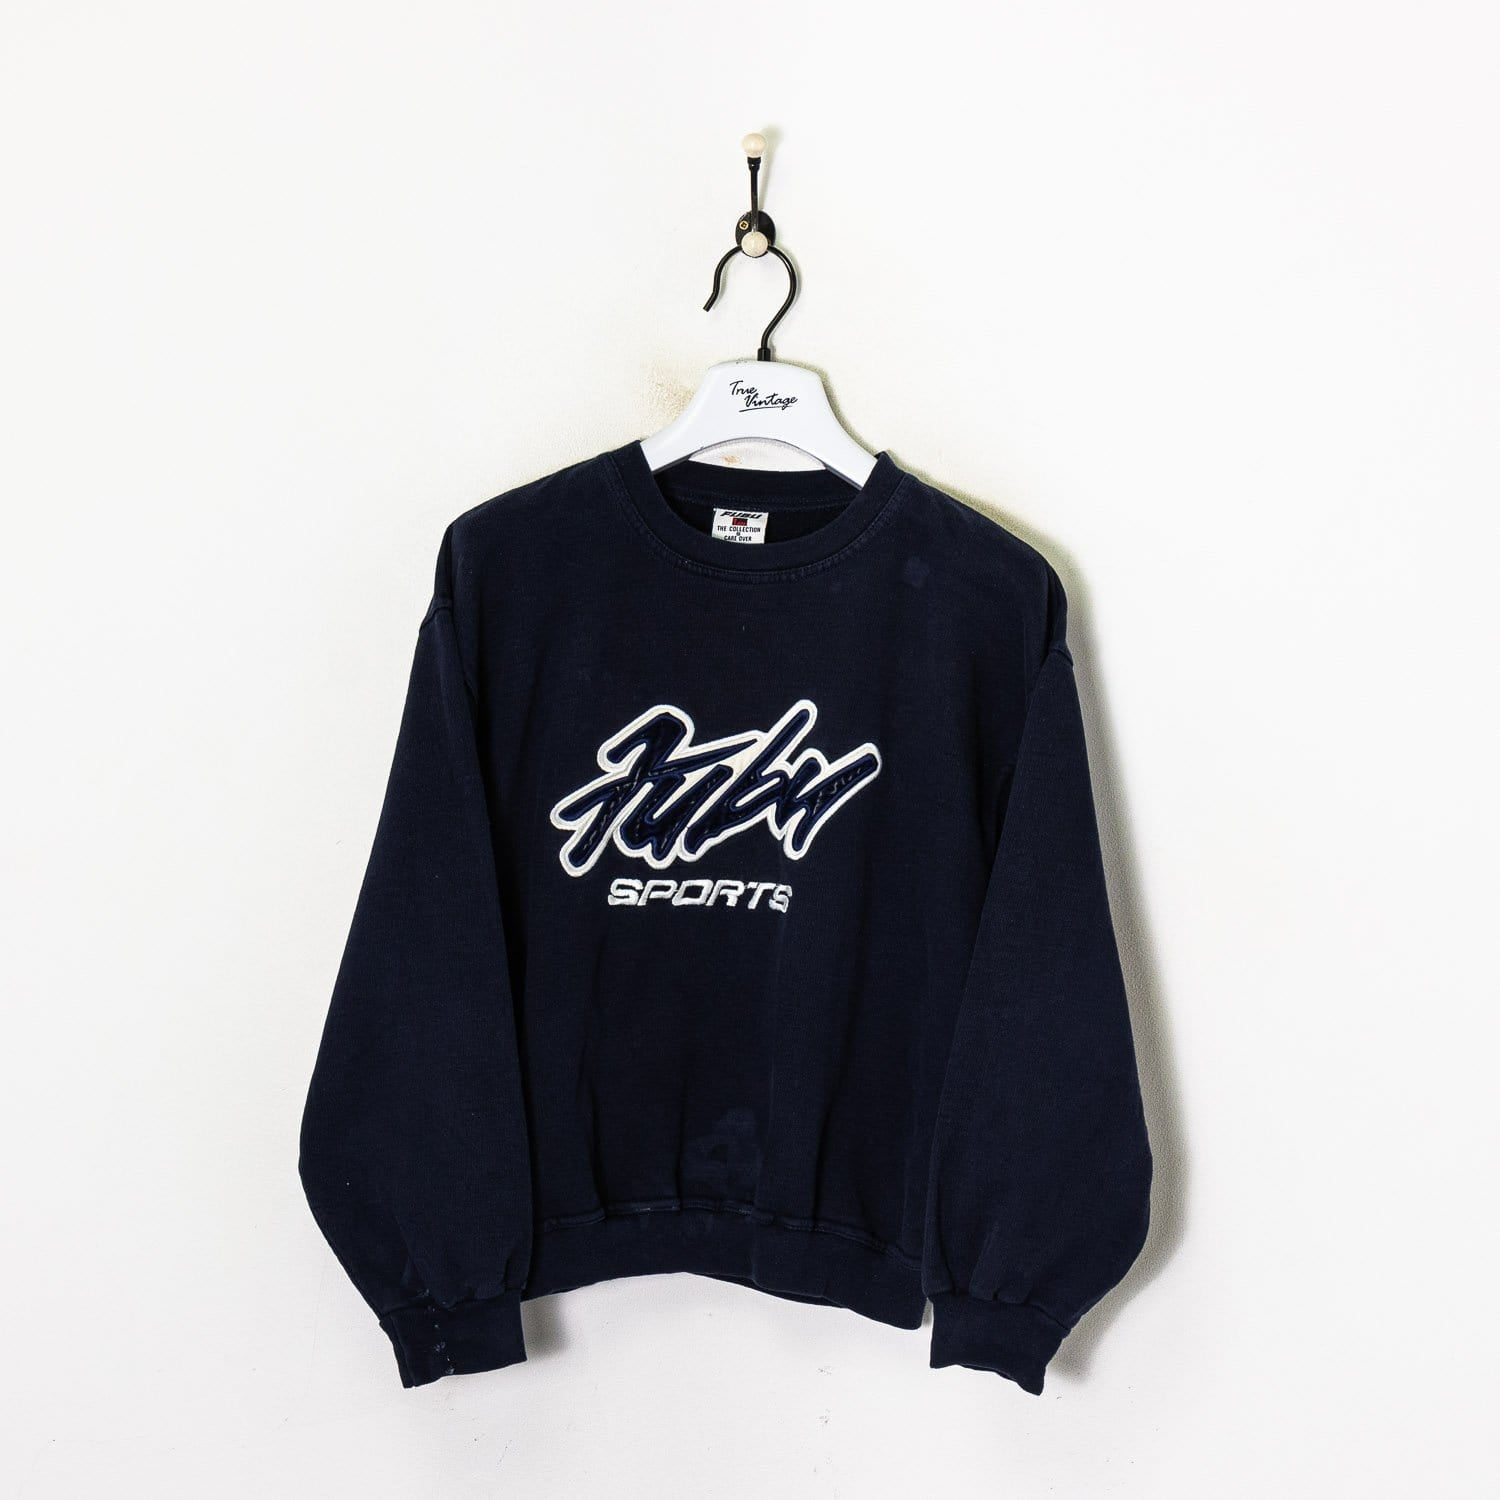 Asics Coat Black XS